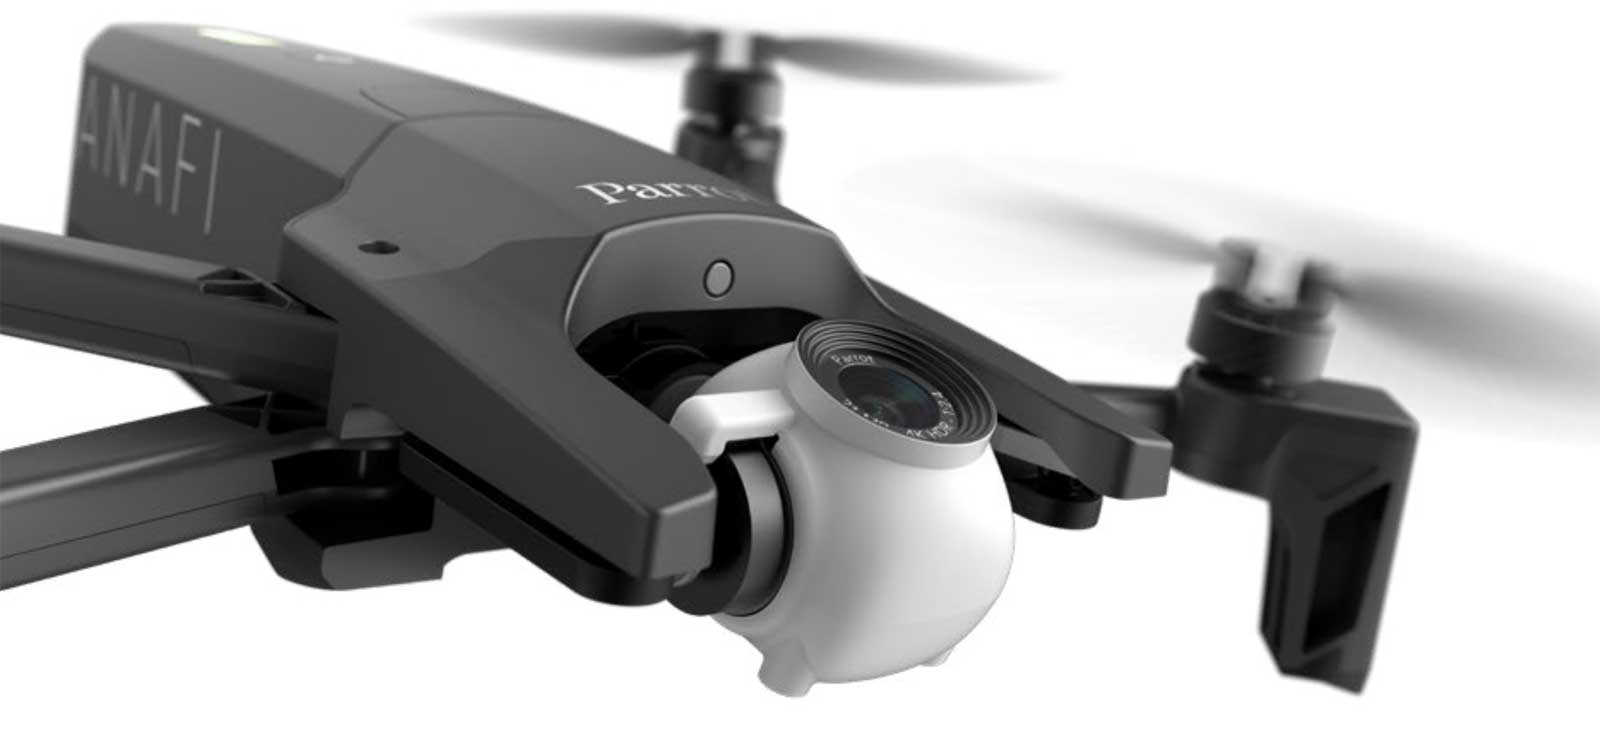 Parrot S Folding 4k Drone Is Ready To Take On Dji S Mavic Air